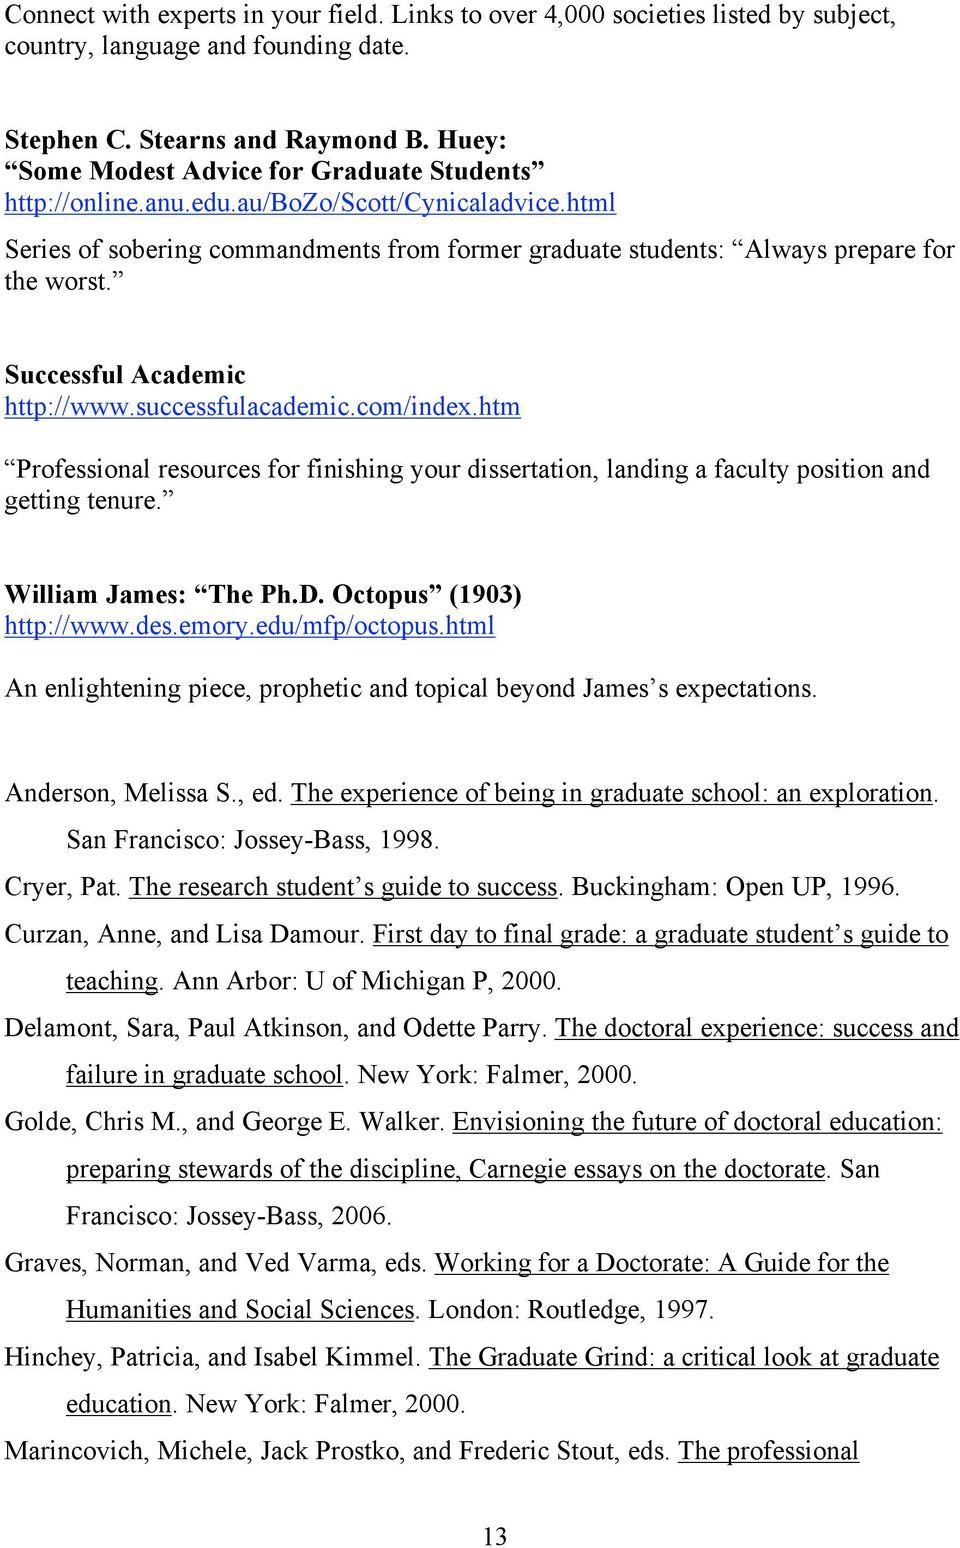 Successful Academic http://www.successfulacademic.com/index.htm Professional resources for finishing your dissertation, landing a faculty position and getting tenure. William James: The Ph.D.